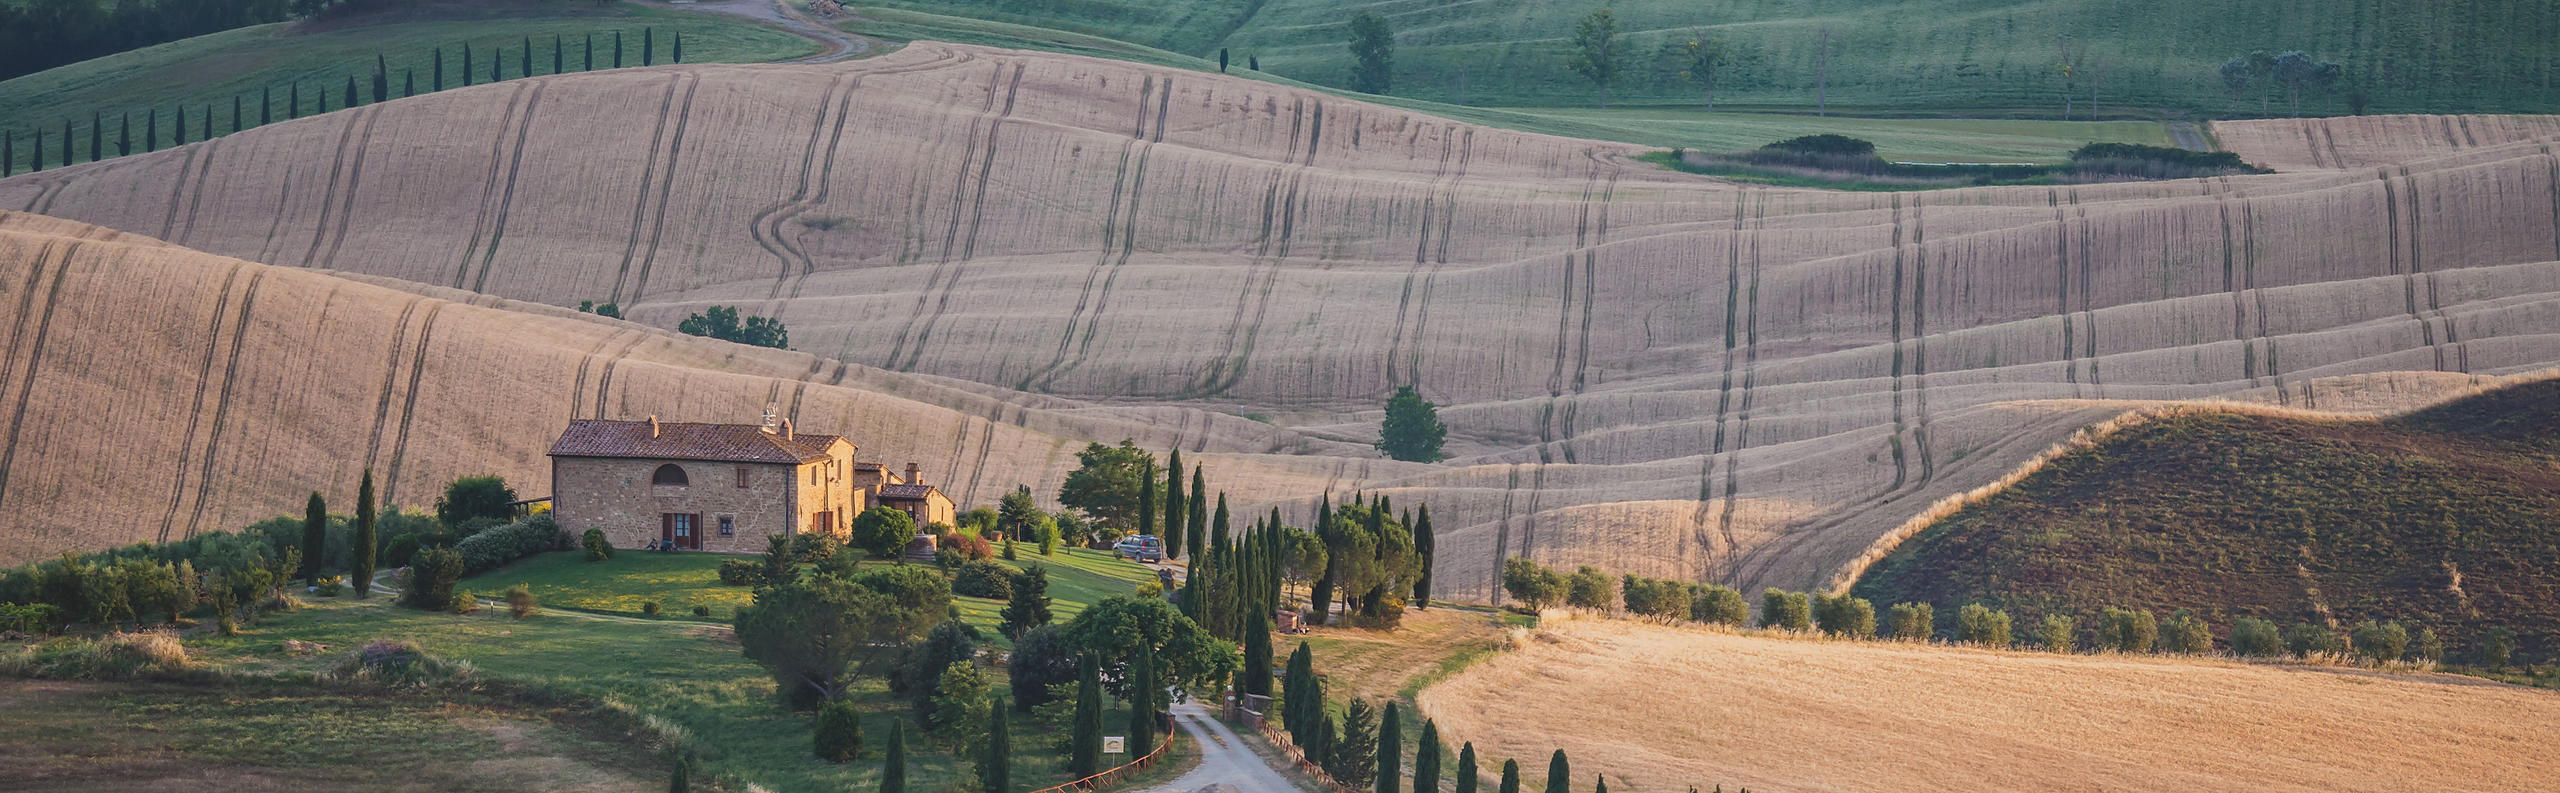 Views of the Val d'Orcia in Tuscany, Italy